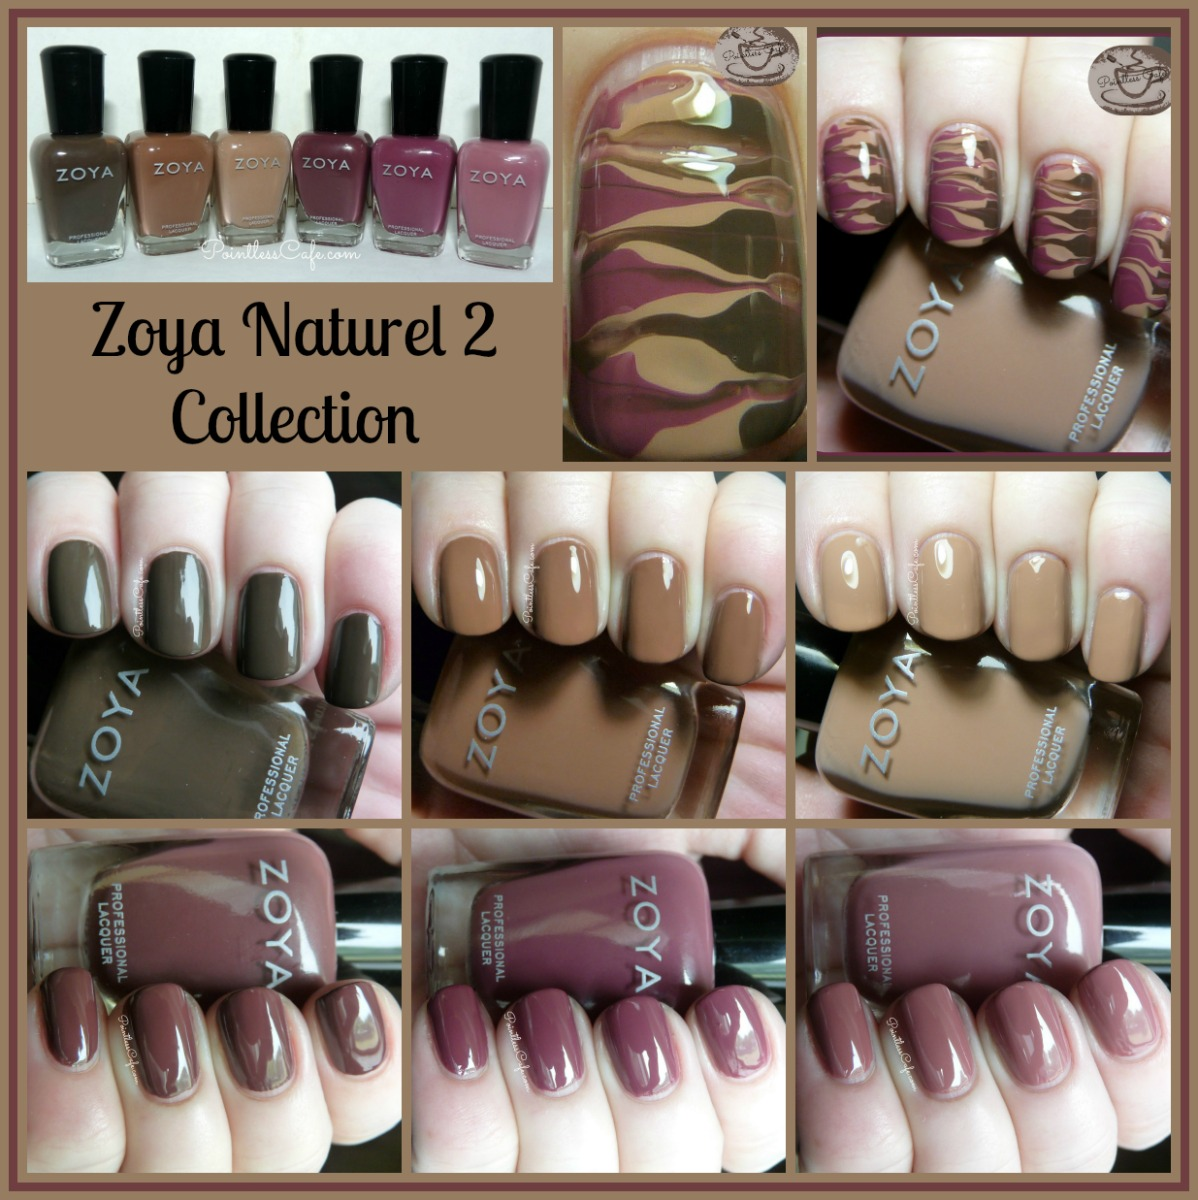 Zoya Natural White Twc Sand Daftar Harga Terlengkap Indonesia Terkini Flawless Cushion 410512 Naturel Deux 2 Collection Swatches Review And Some Nail Art Pointless Cafe